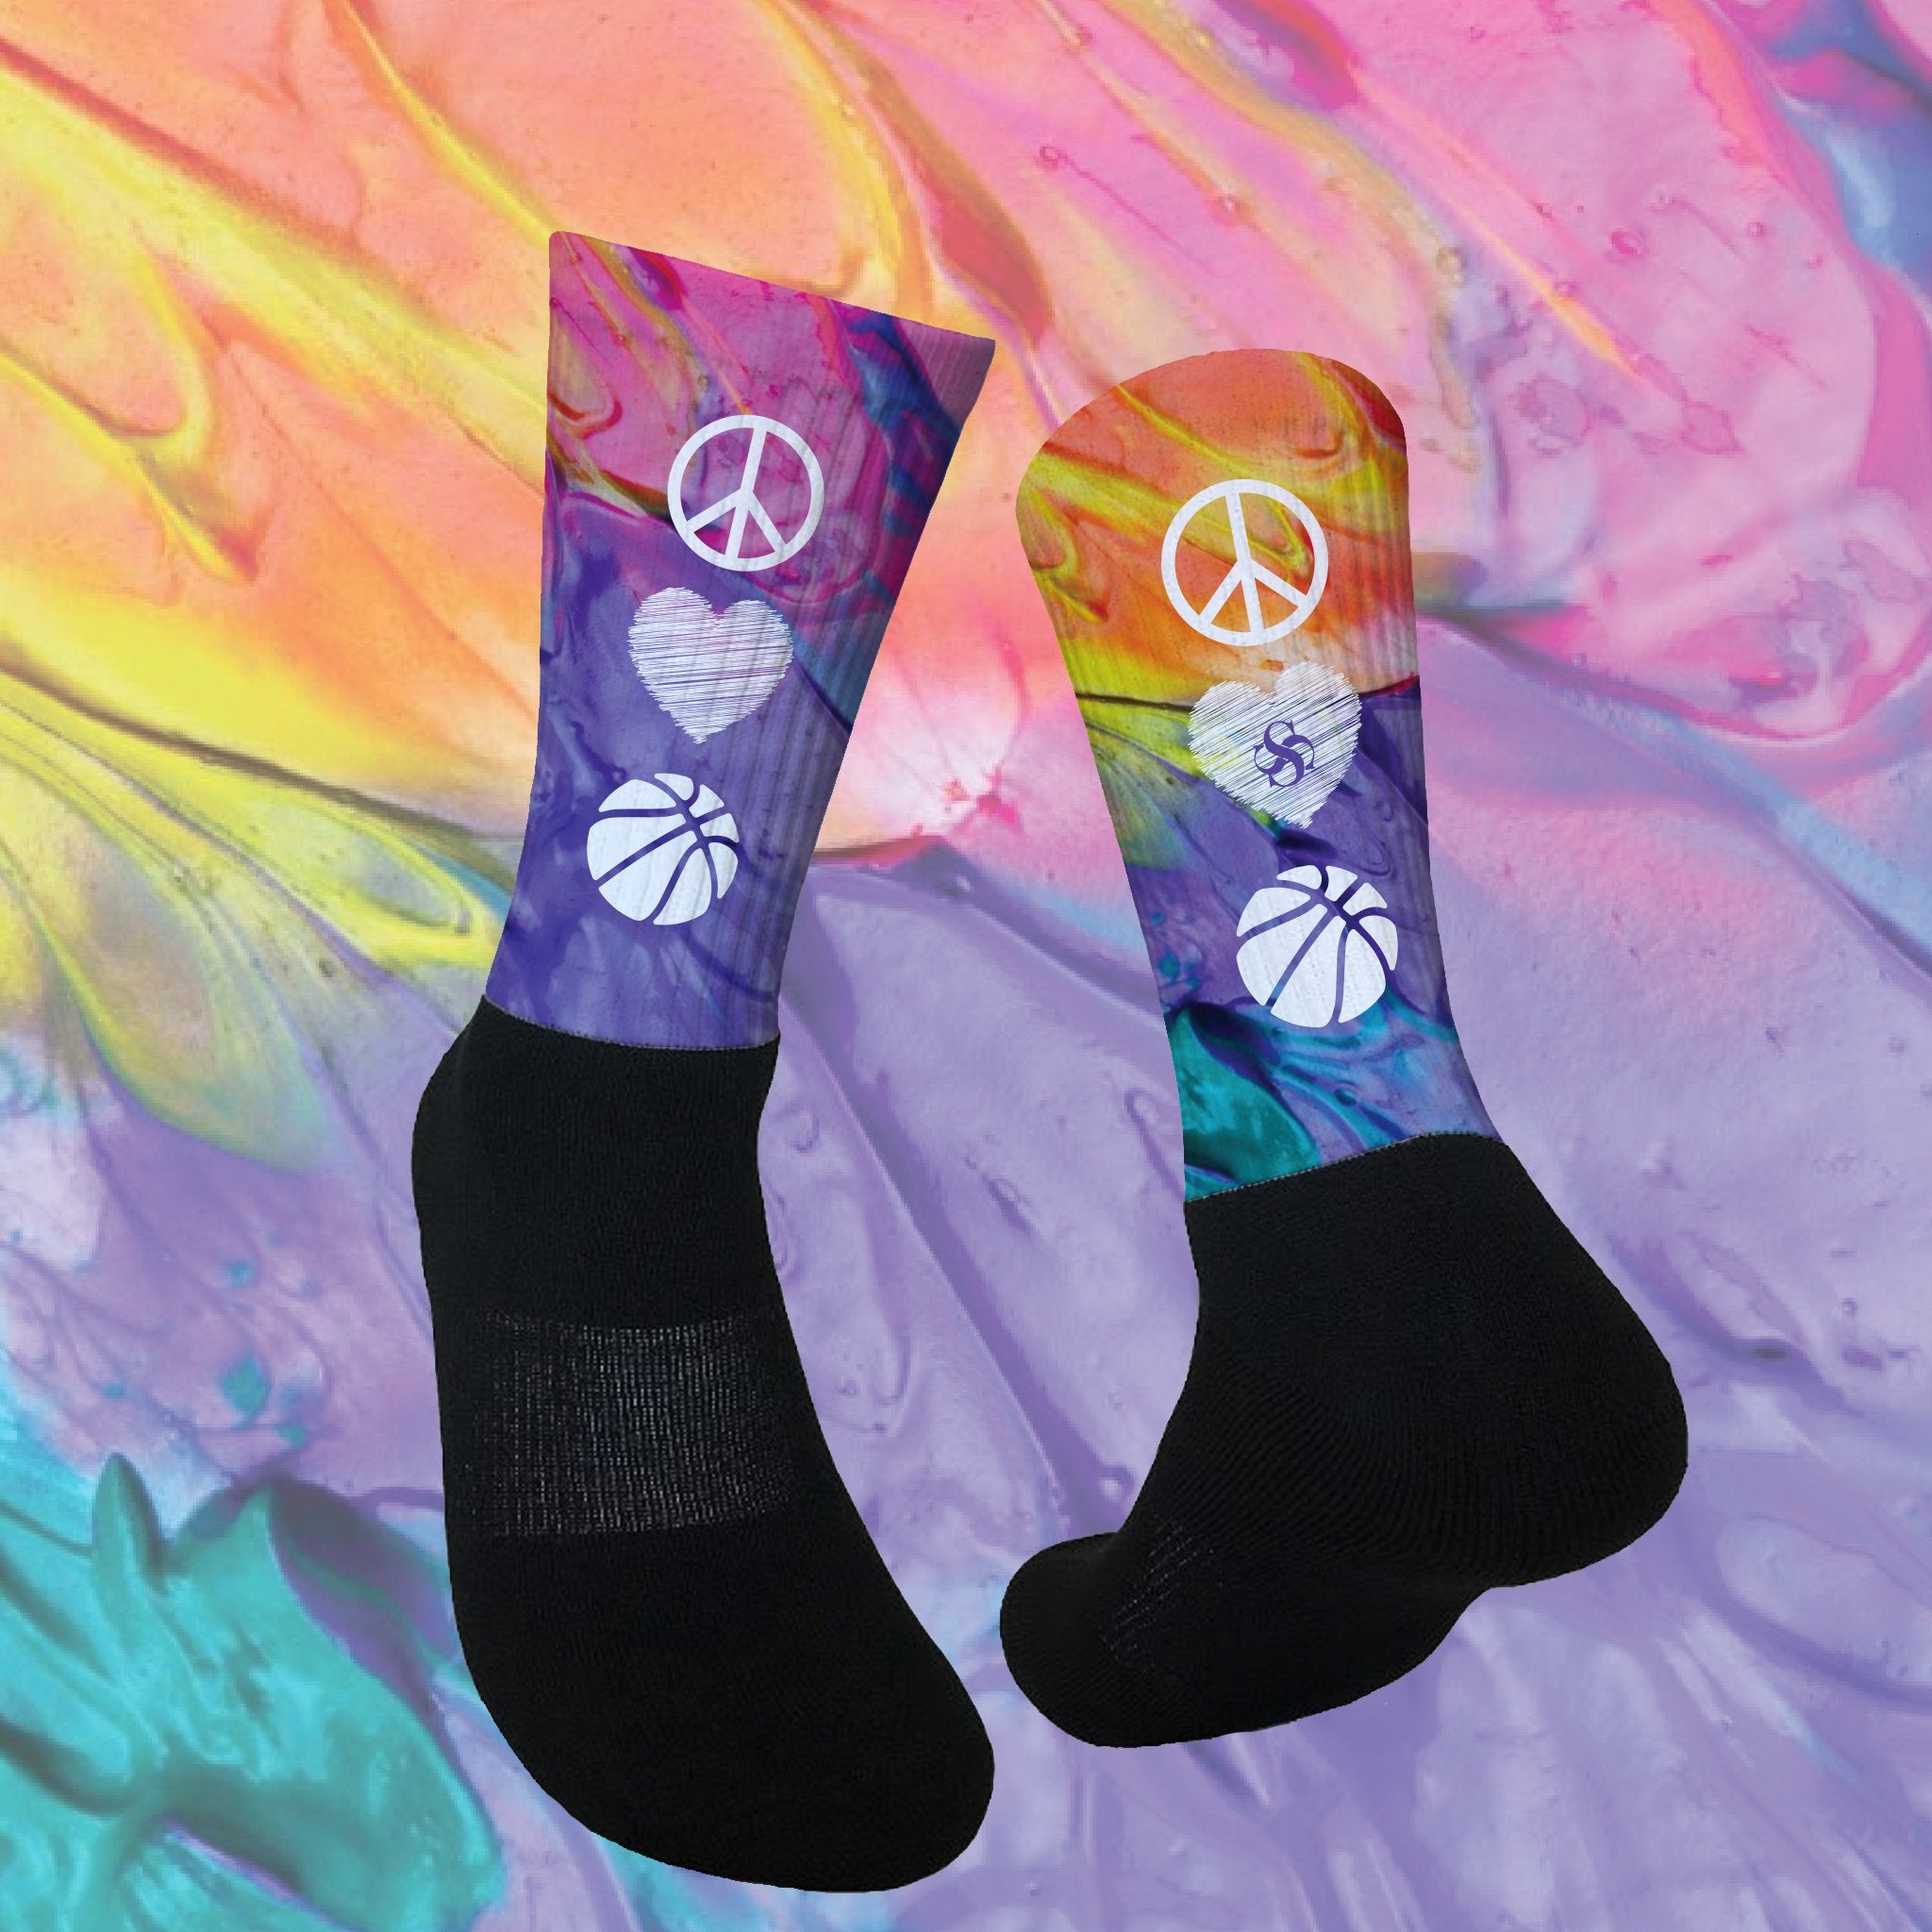 PEACE, LOVE & BASKETBALL Socks!